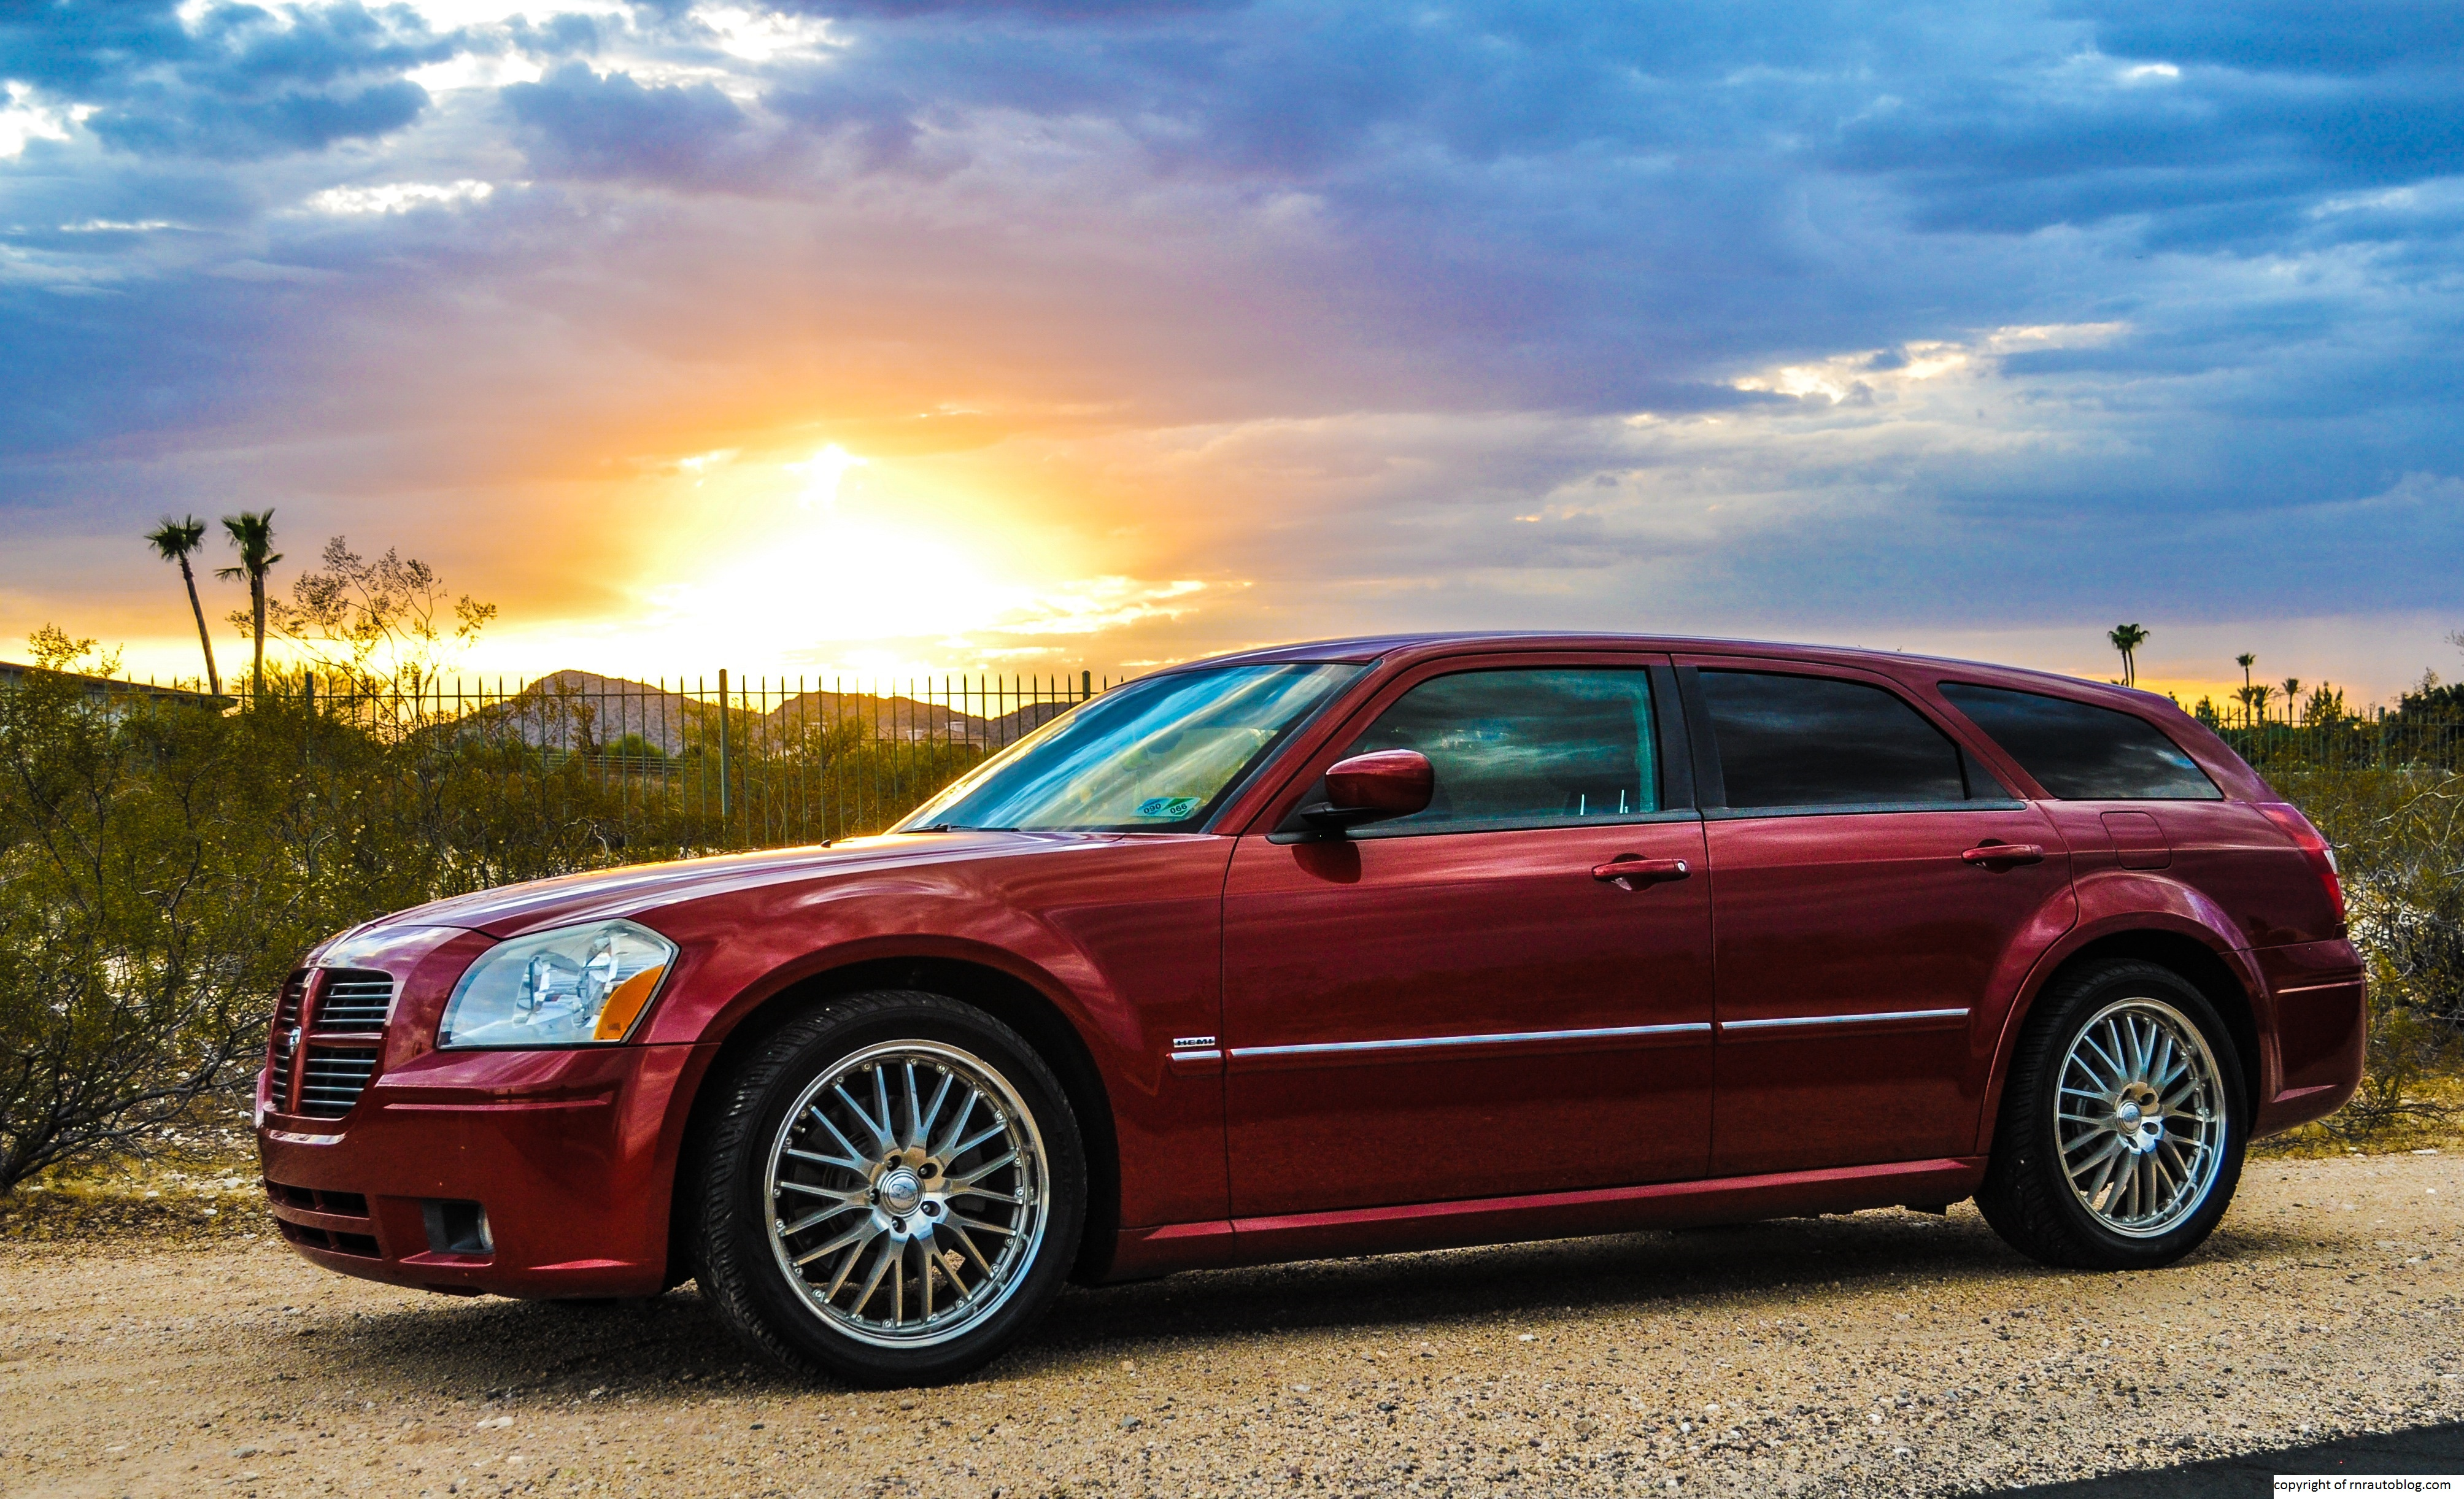 2005 Dodge Magnum R T Review Rnr Automotive Blog